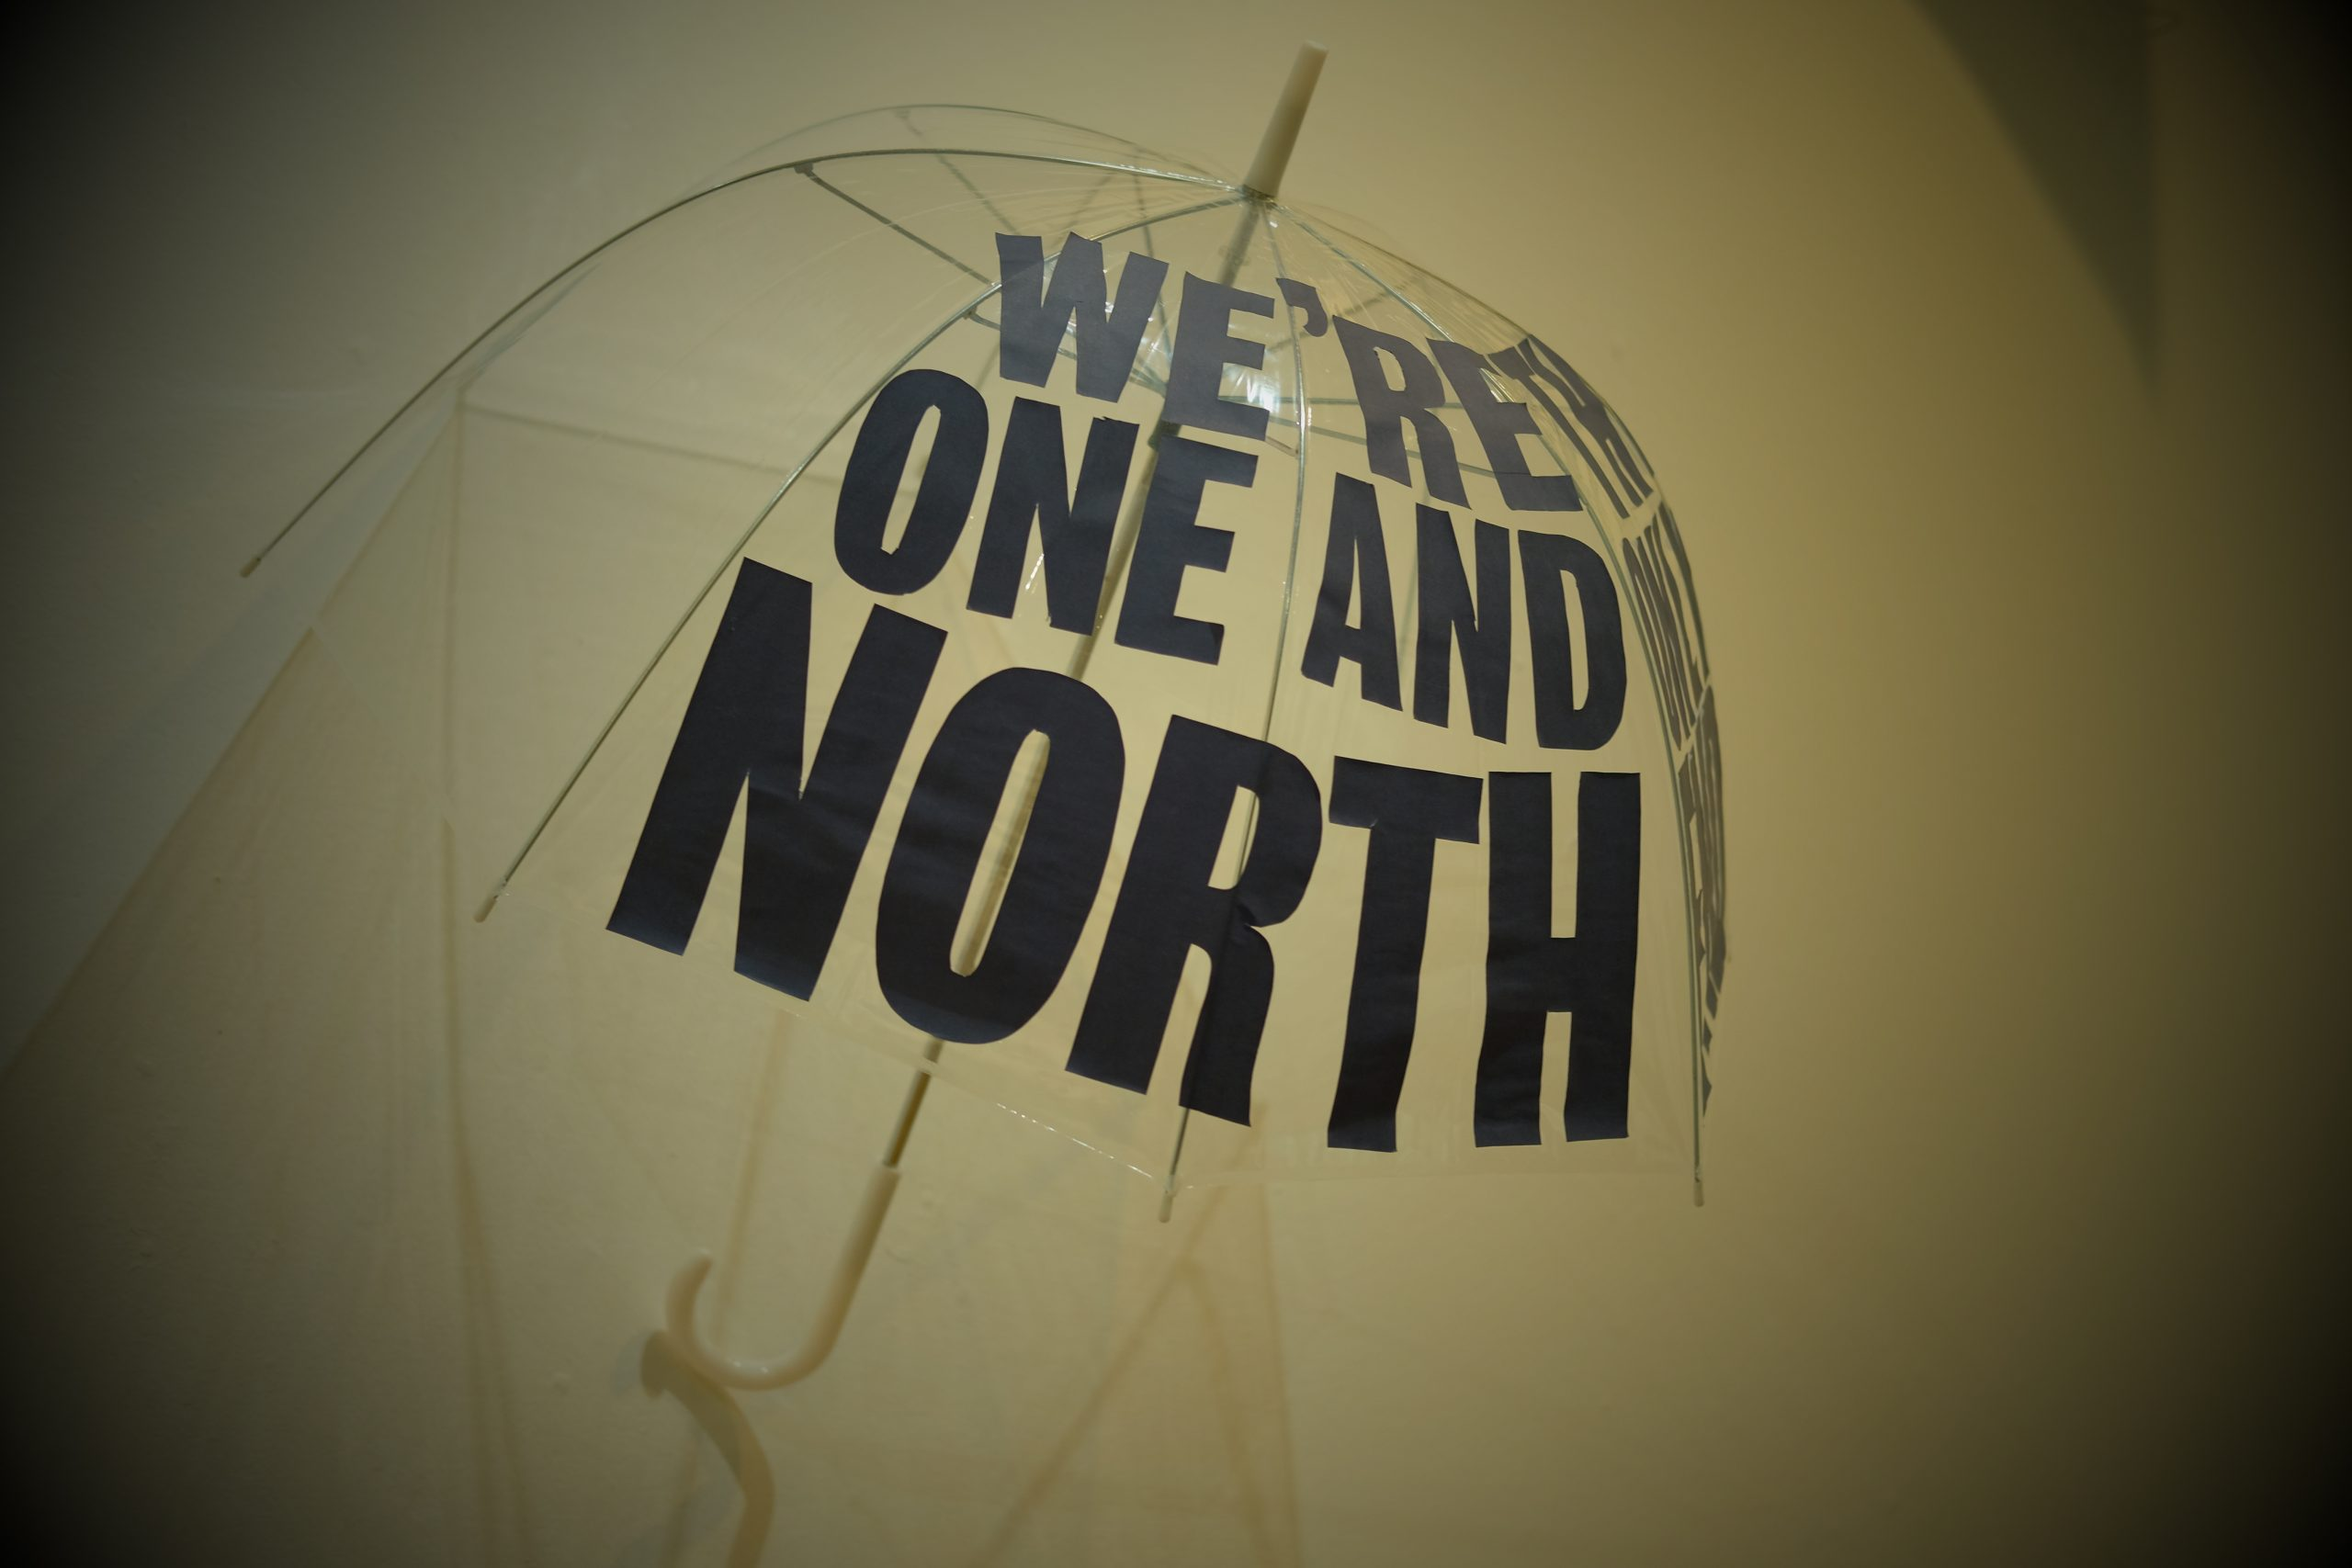 Umbrella with the words 'We're one and North' on it